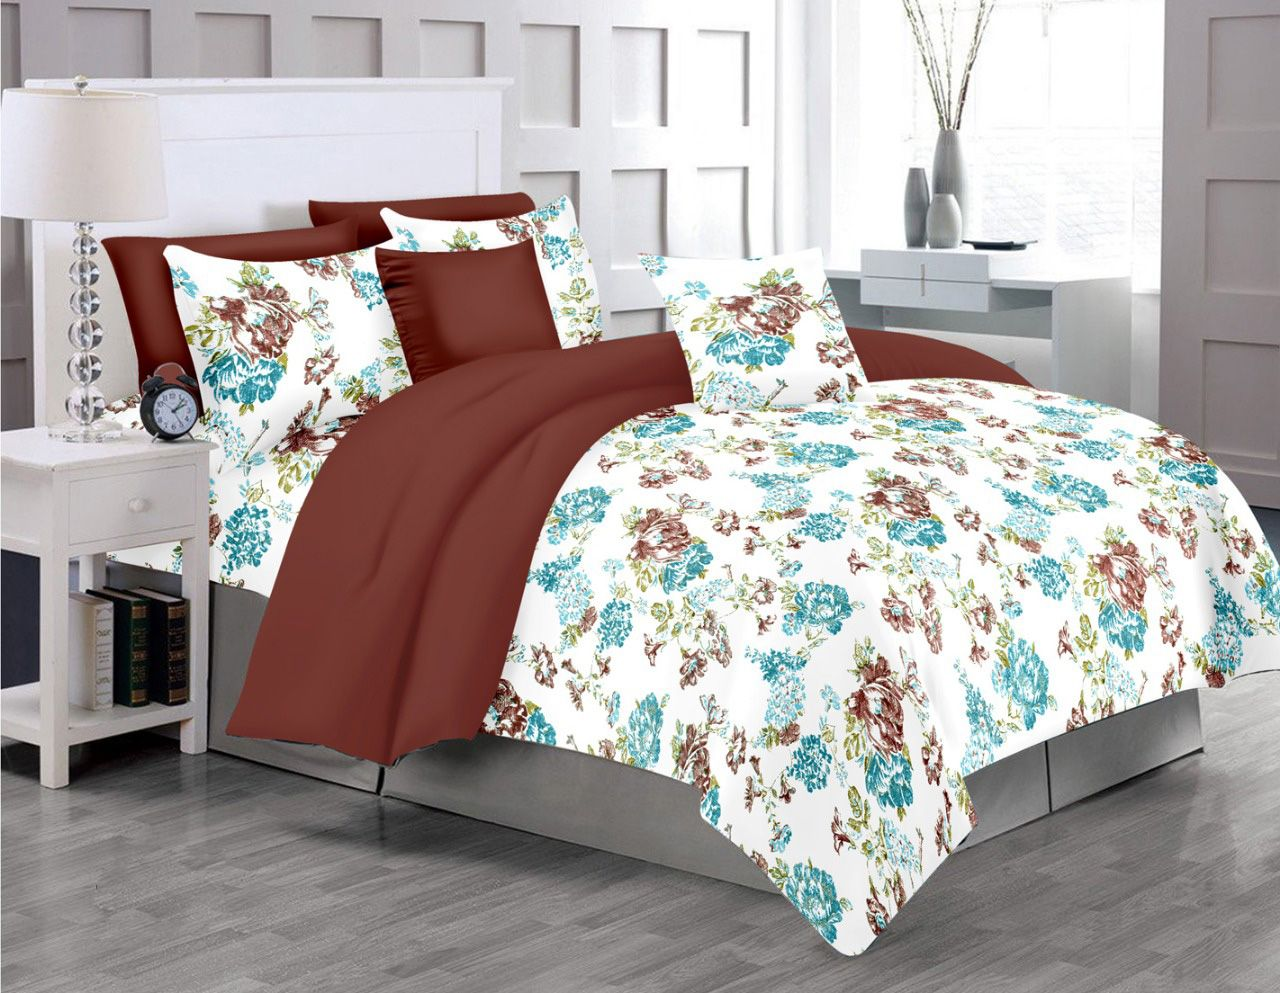 Hotel bed linen in 2020 Wholesale bedding, Hotel bed